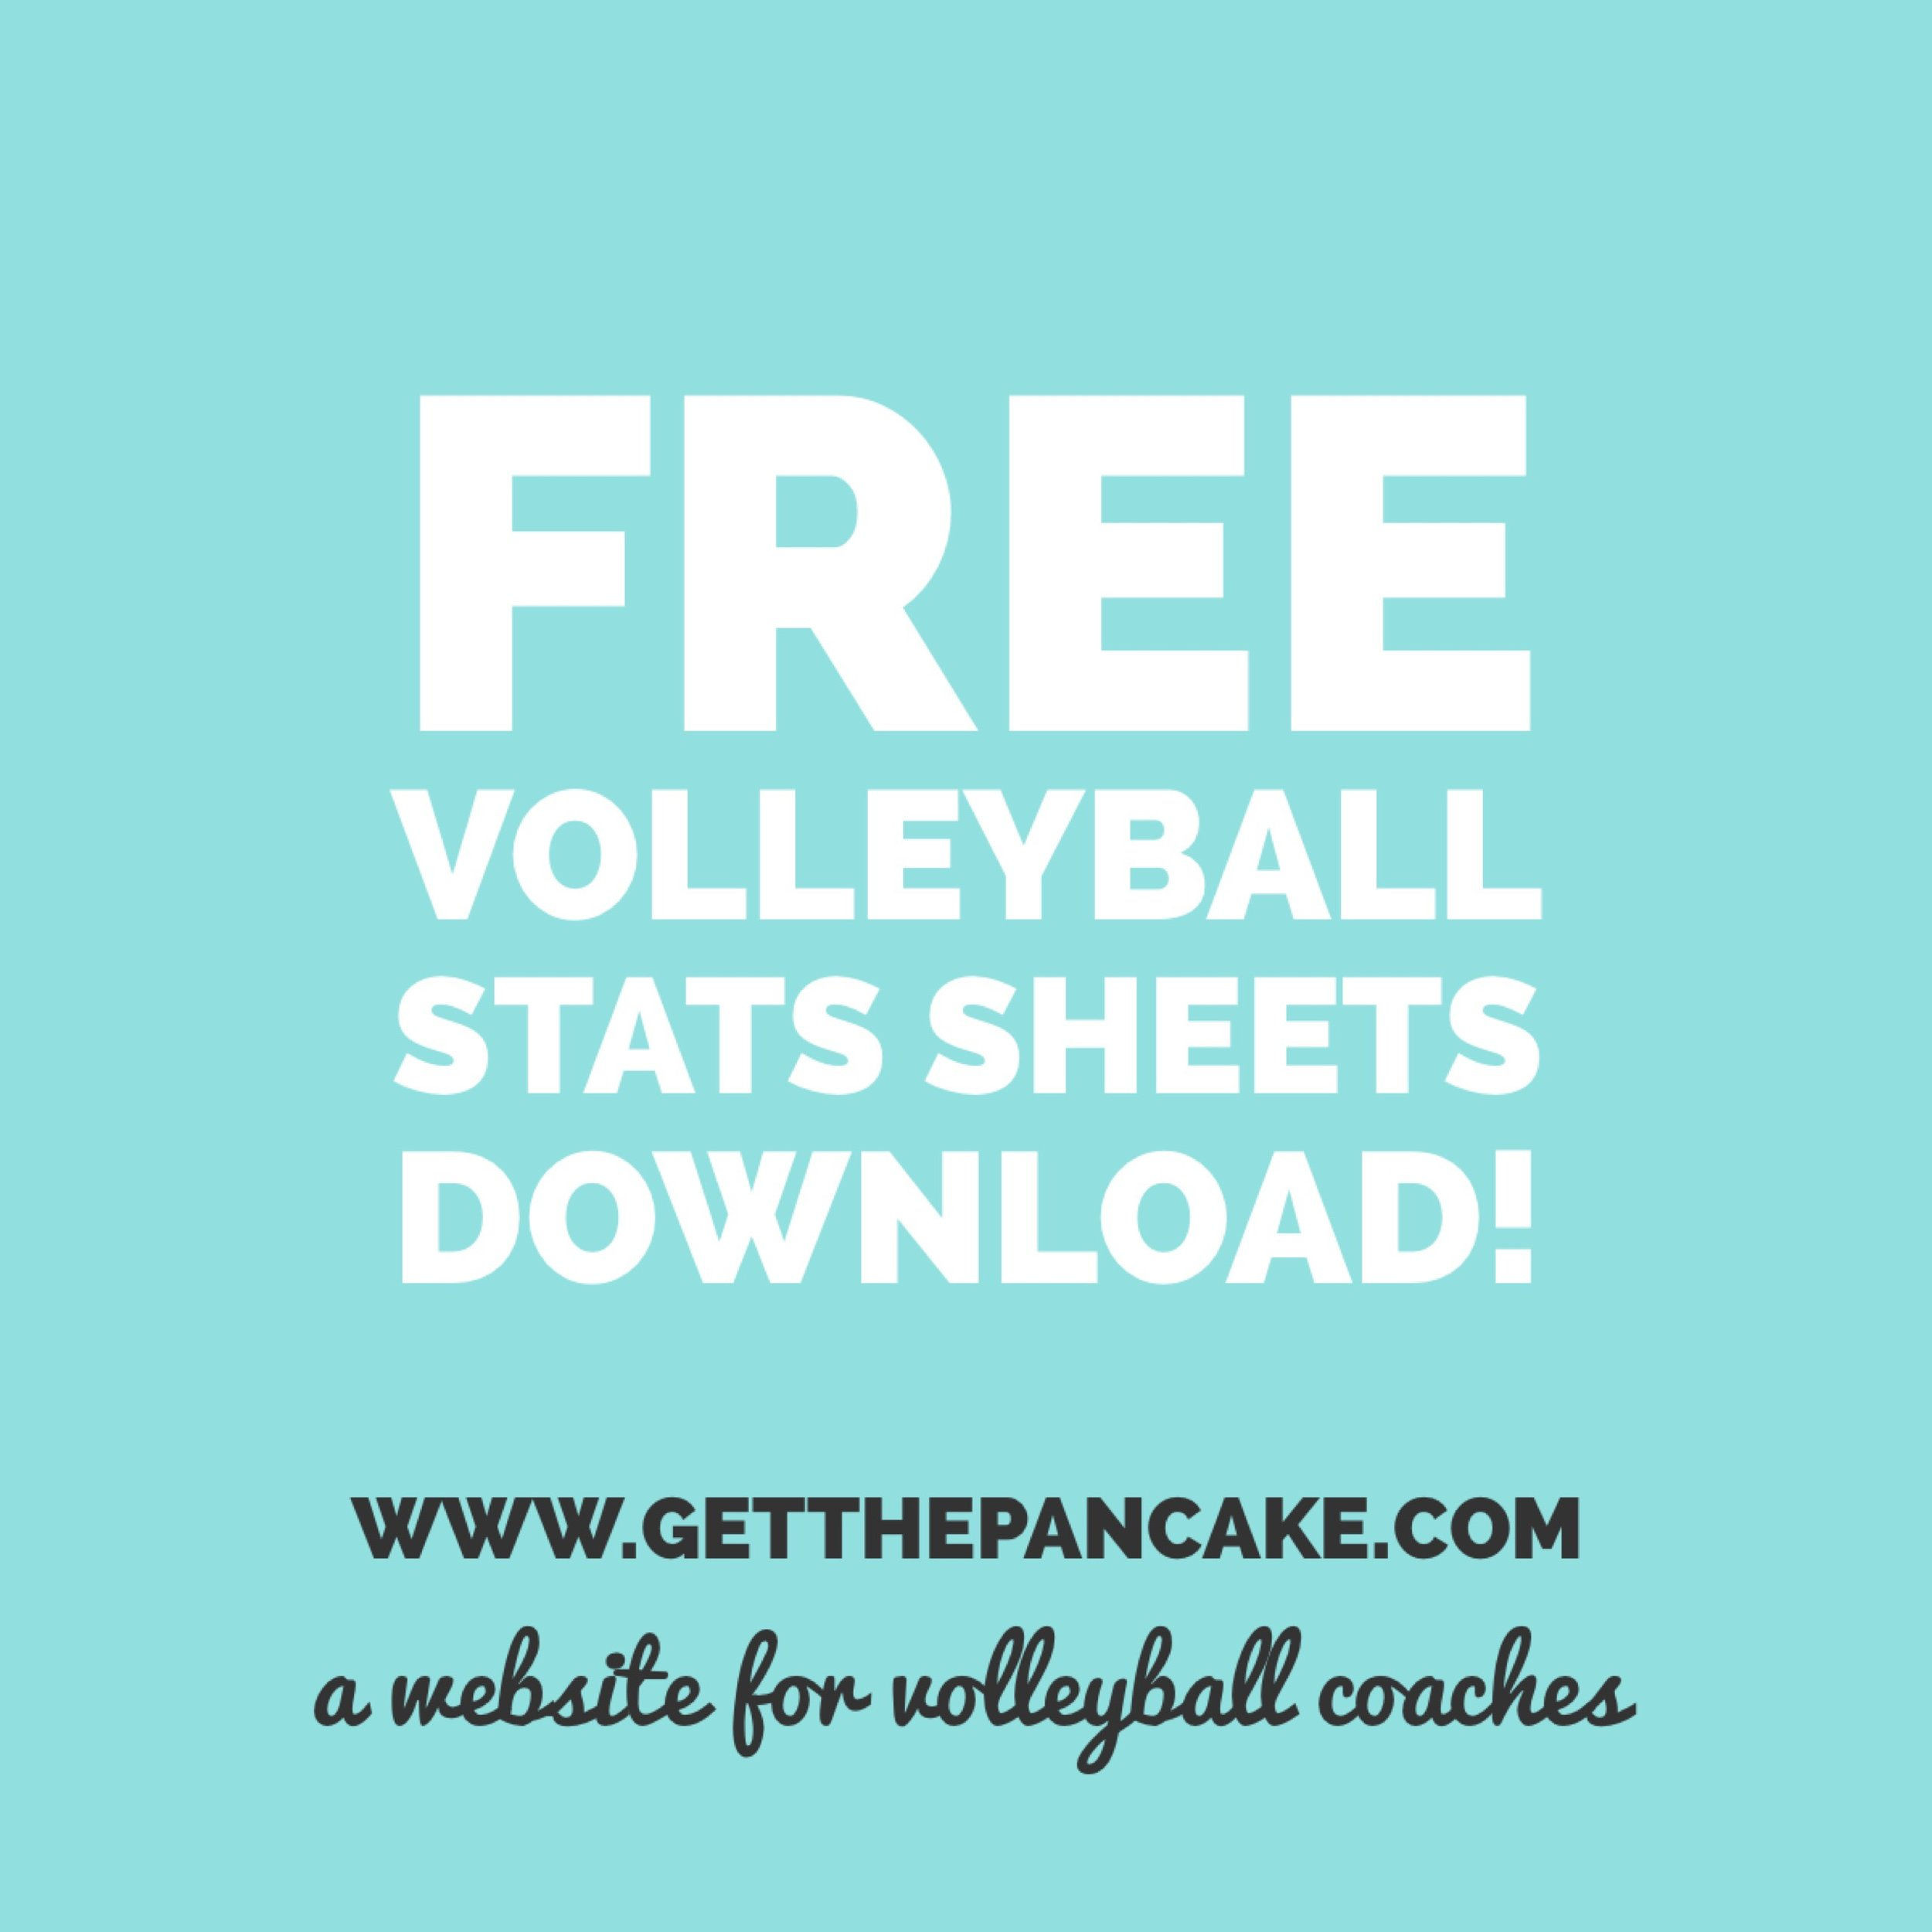 photo relating to Volleyball Stat Sheets Printable known as Totally free Volleyball Statistics Sheet Down load! Consider The Pancake A